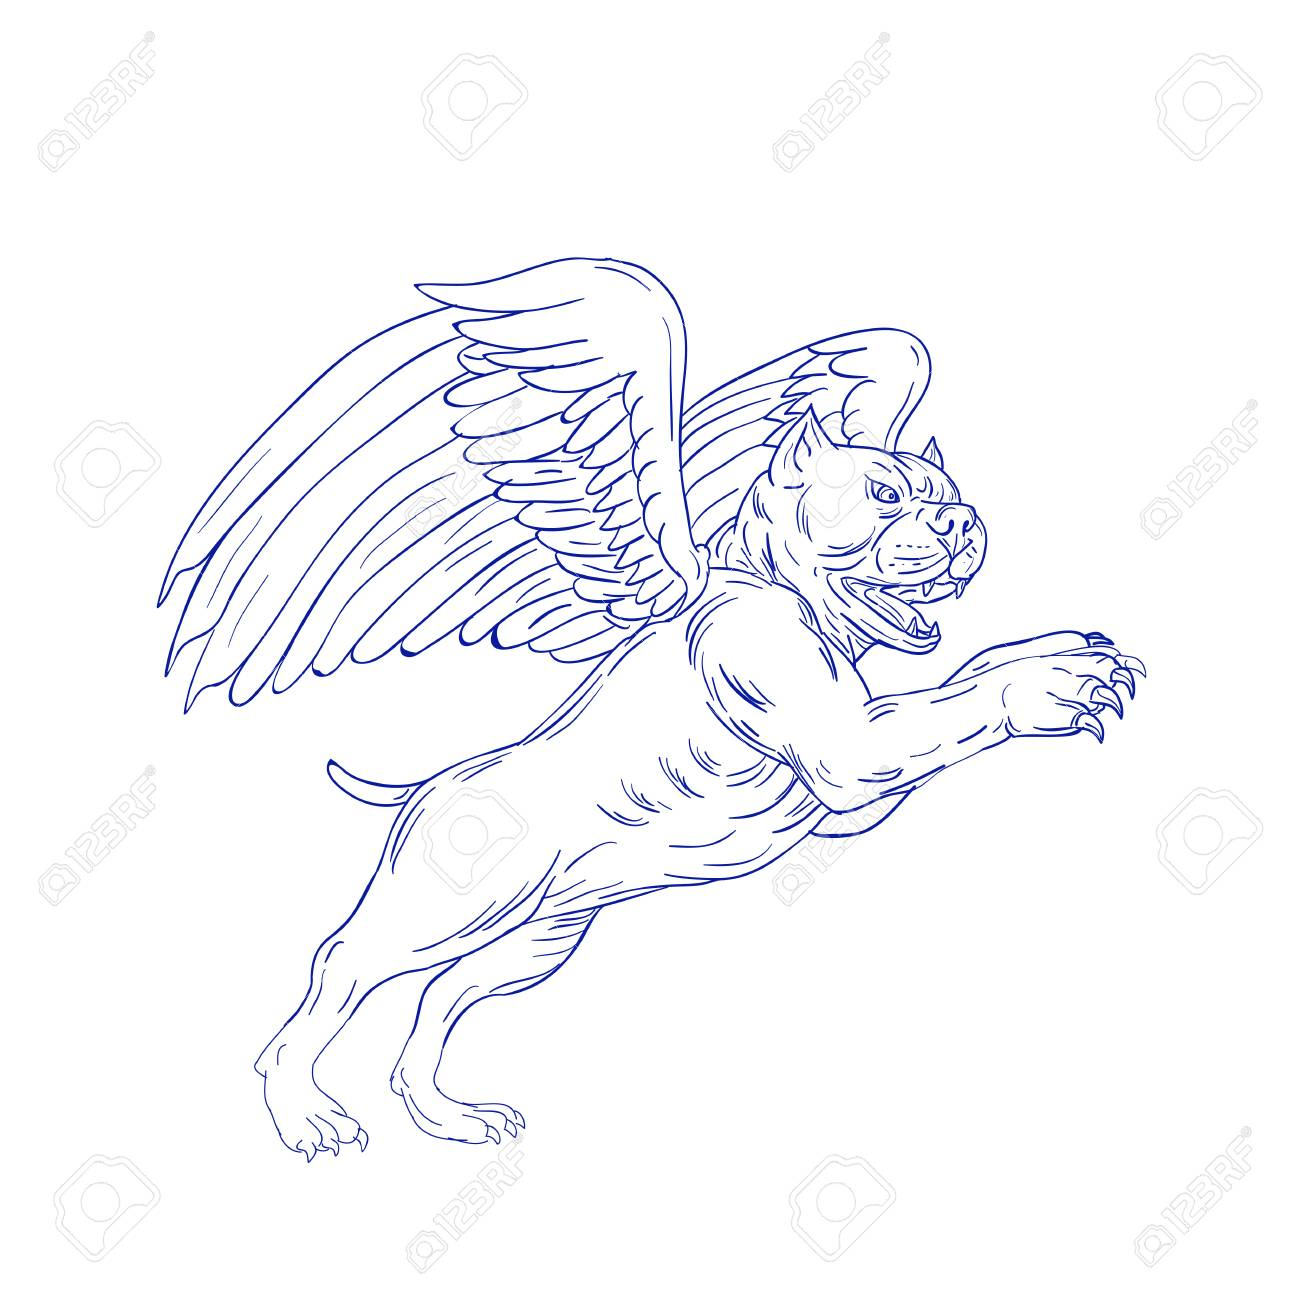 Drawing sketch style illustration of an american bully dog with angel wings prancing jumping viewed from